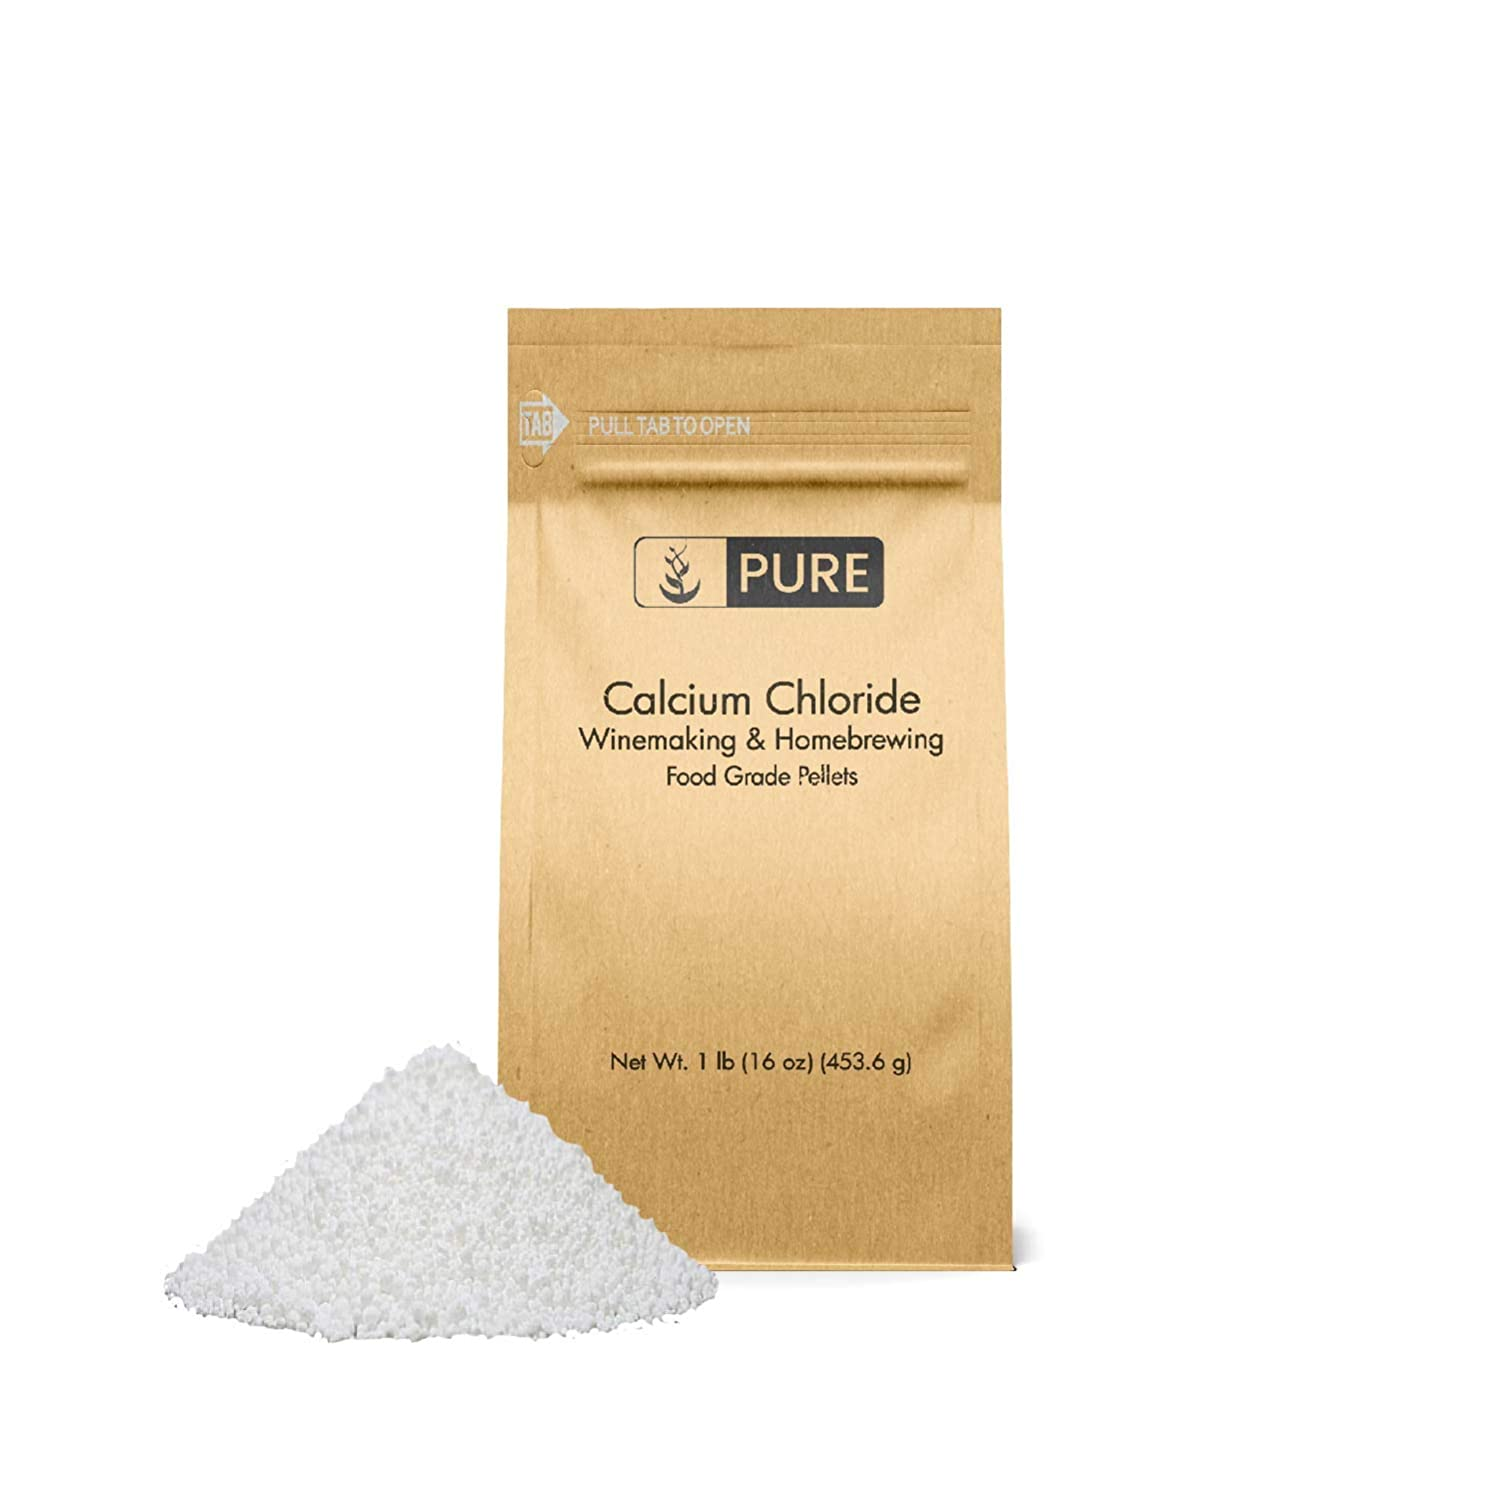 Calcium Chloride (1 lb.) by Pure Organic Ingredients, Eco-Friendly Packaging, Highest Quality, Food Grade, Wine Making, Home Brew, Cheese Making 61dAf799ffL